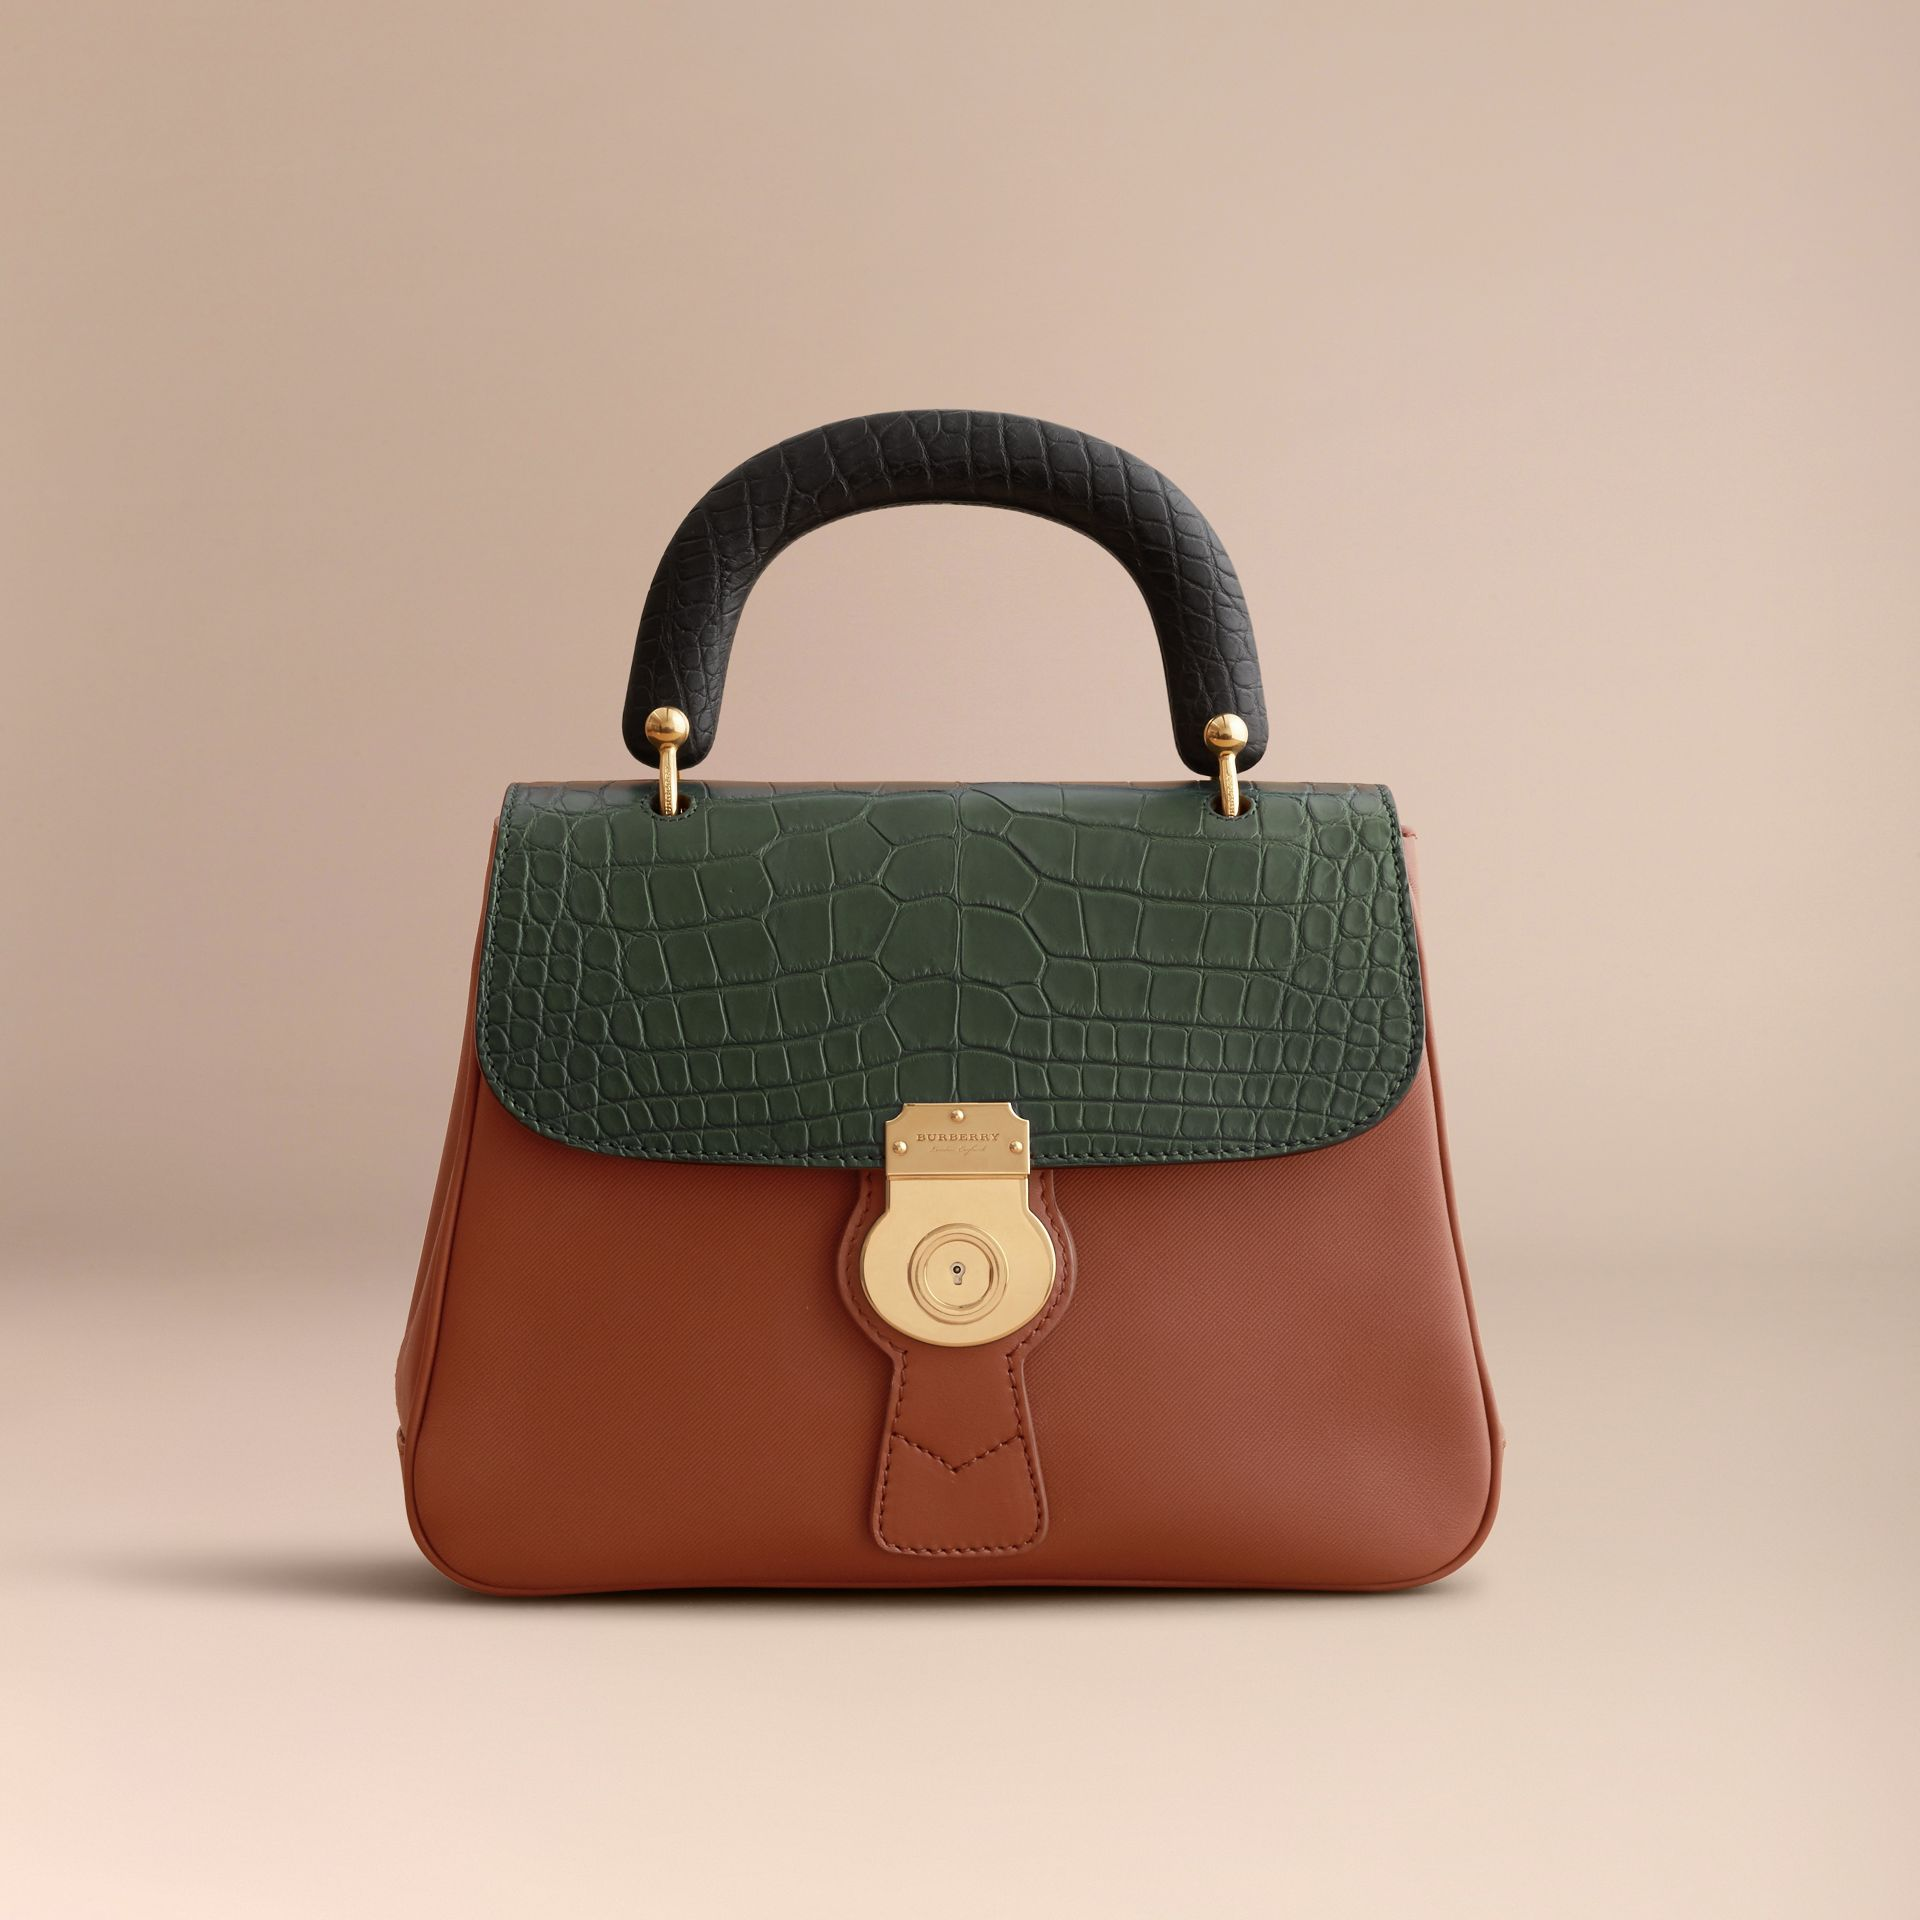 Sac à main DK88 medium avec alligator - Femme | Burberry - photo de la galerie 7